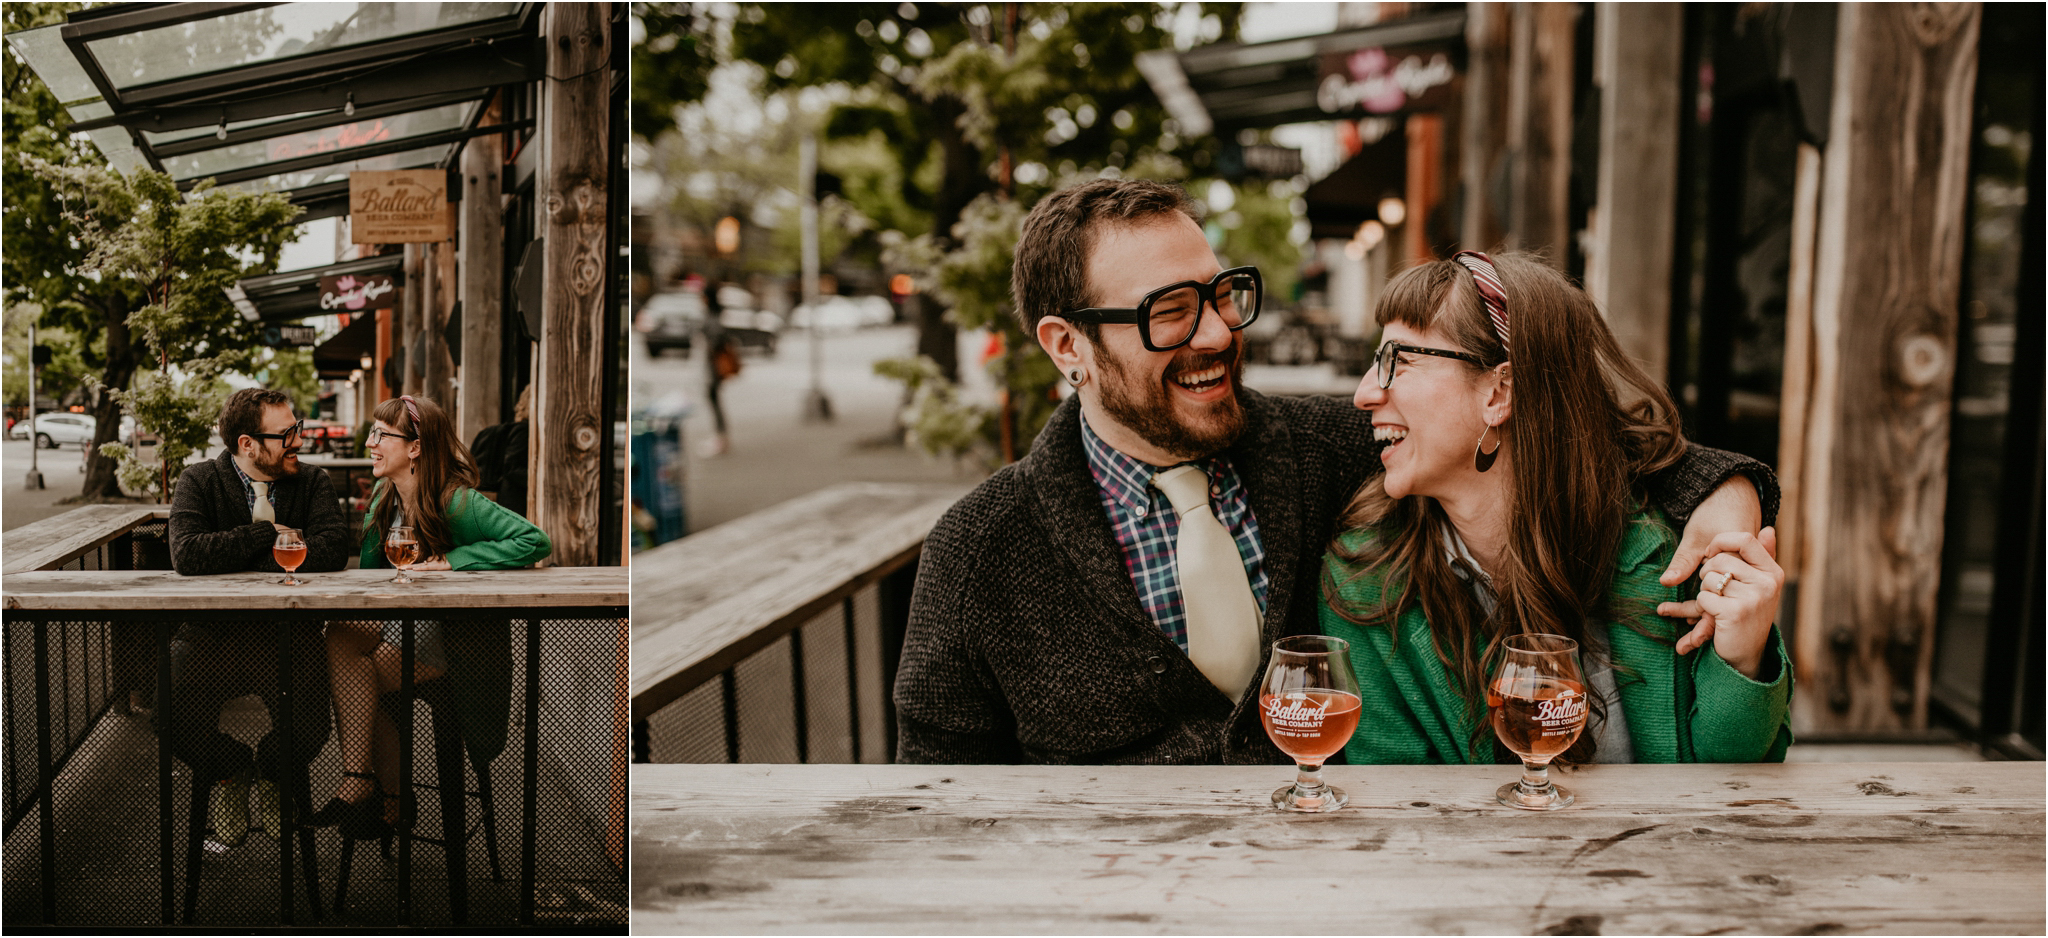 jaimie-and-jake-ballard-seattle-engagement-session-003.jpg